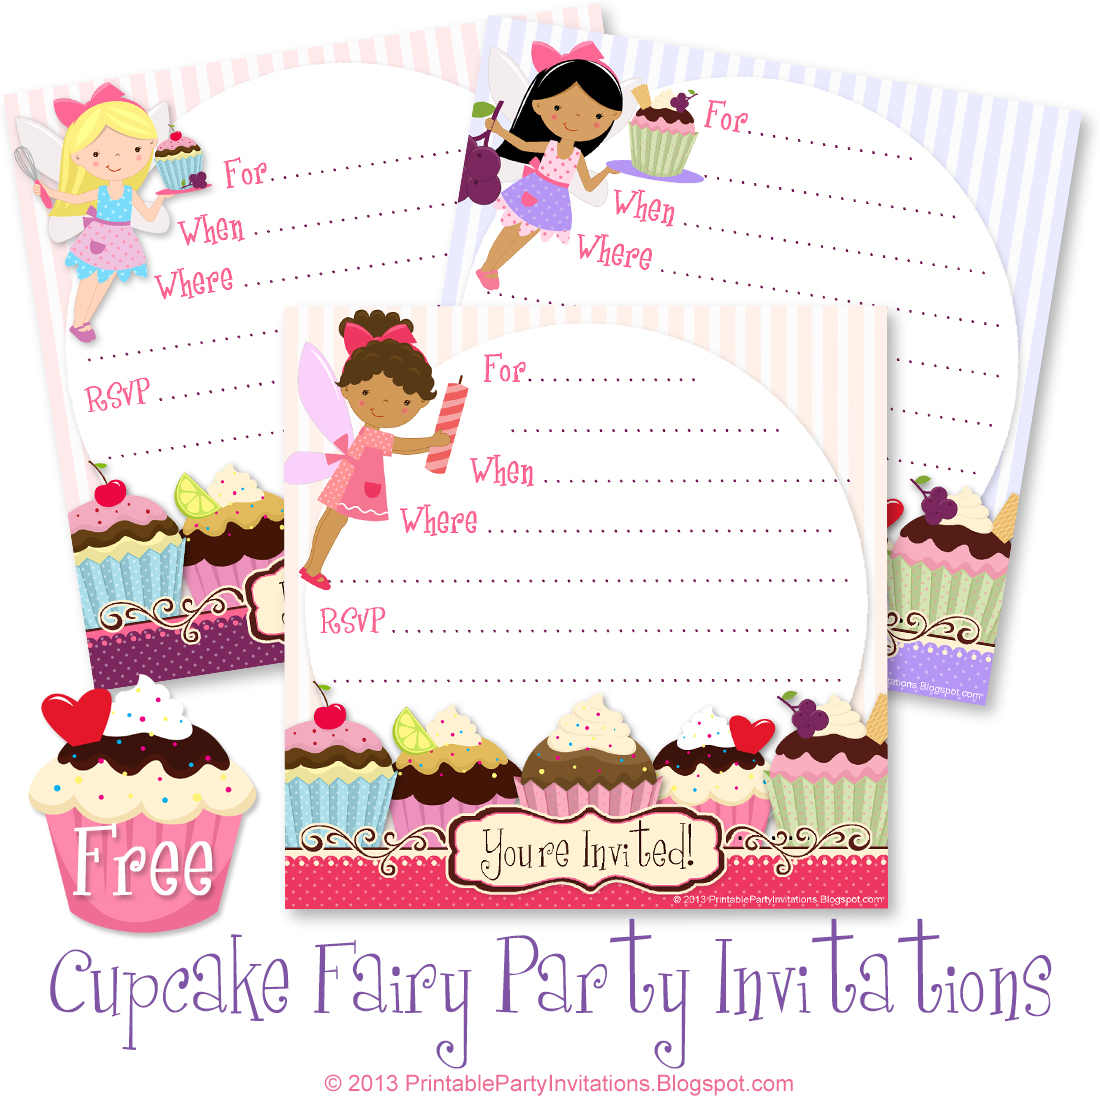 These Free Printable Cupcake Fairy Party Invite Templates Can Be Used For Birthdays Tea Parties Hen Sleepovers Holiday Dessert Exchanges Or Just